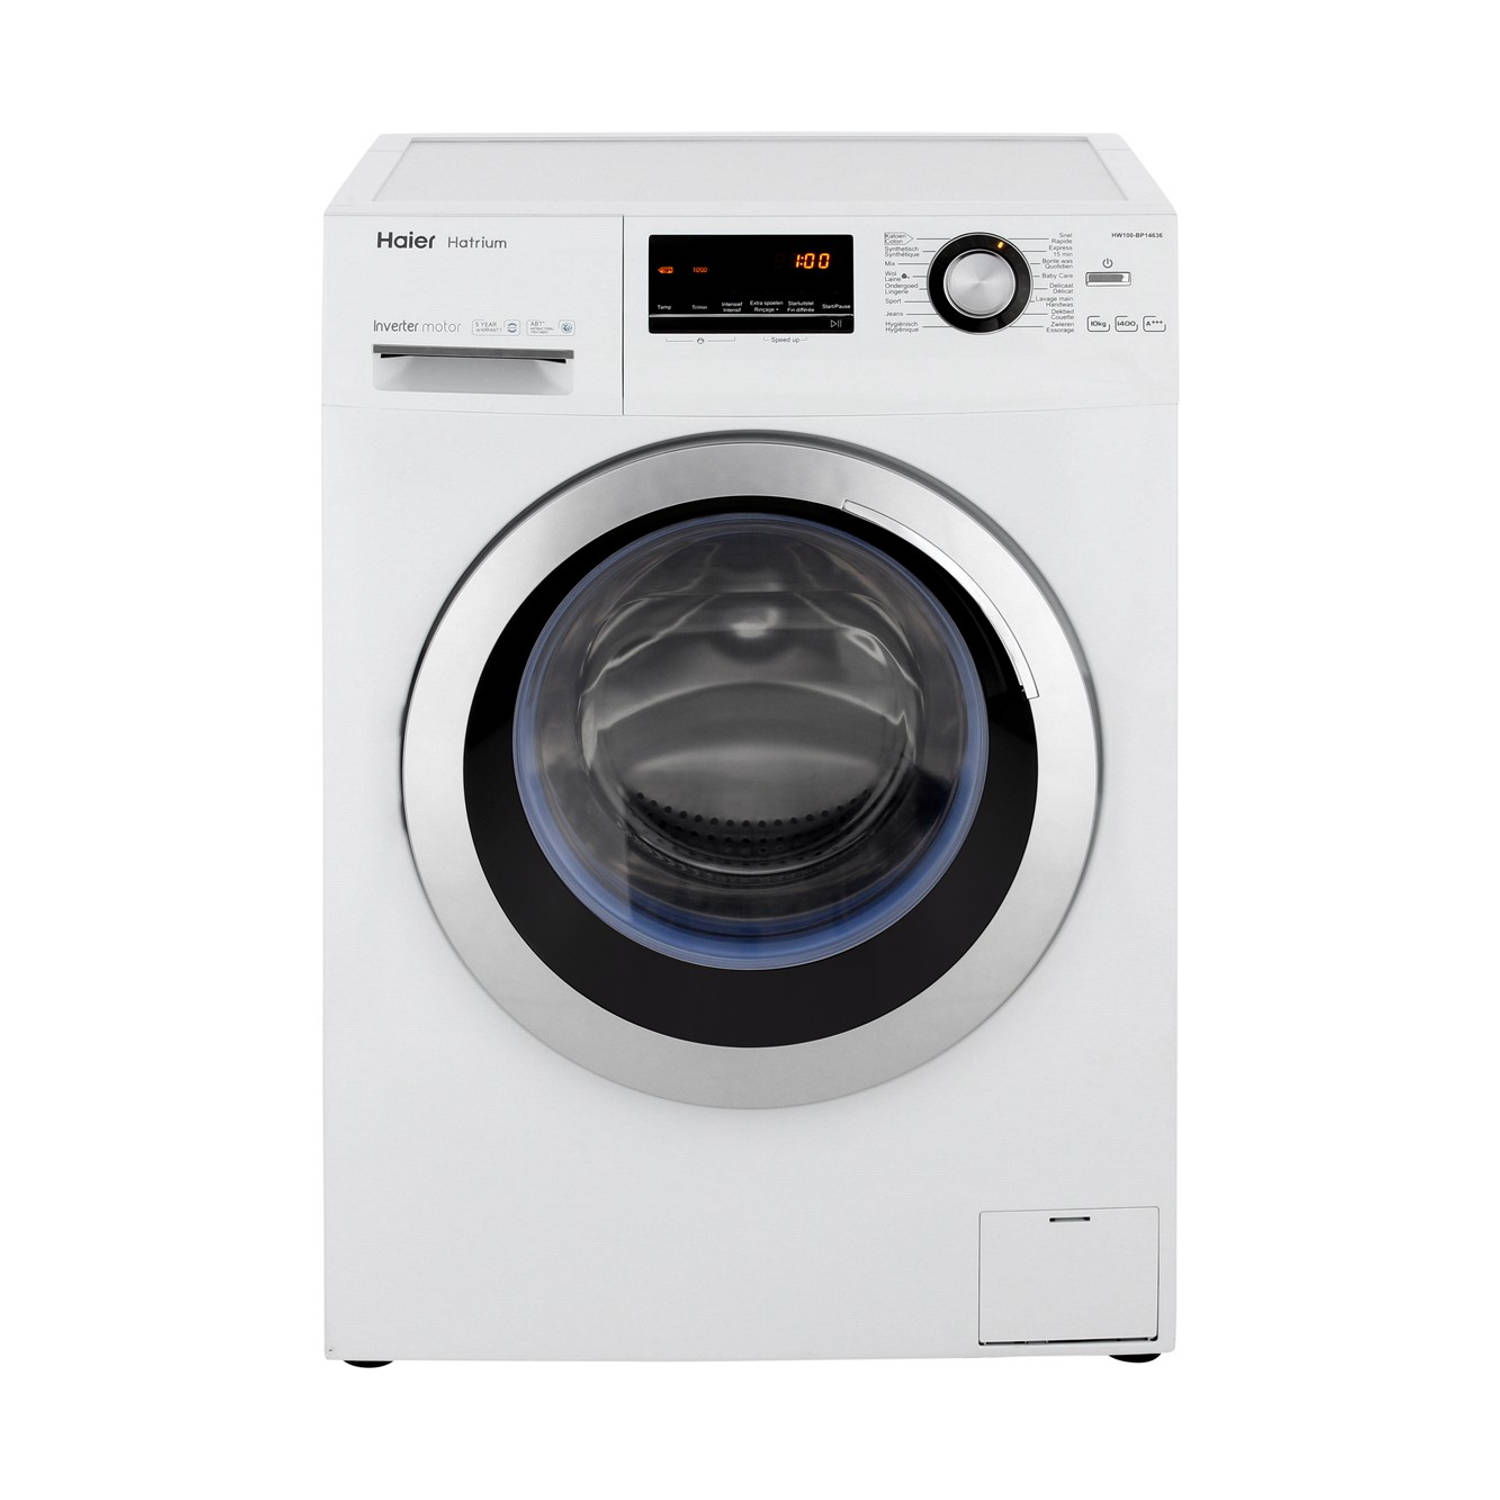 Haier HW100-BP14636 wasmachines - Wit